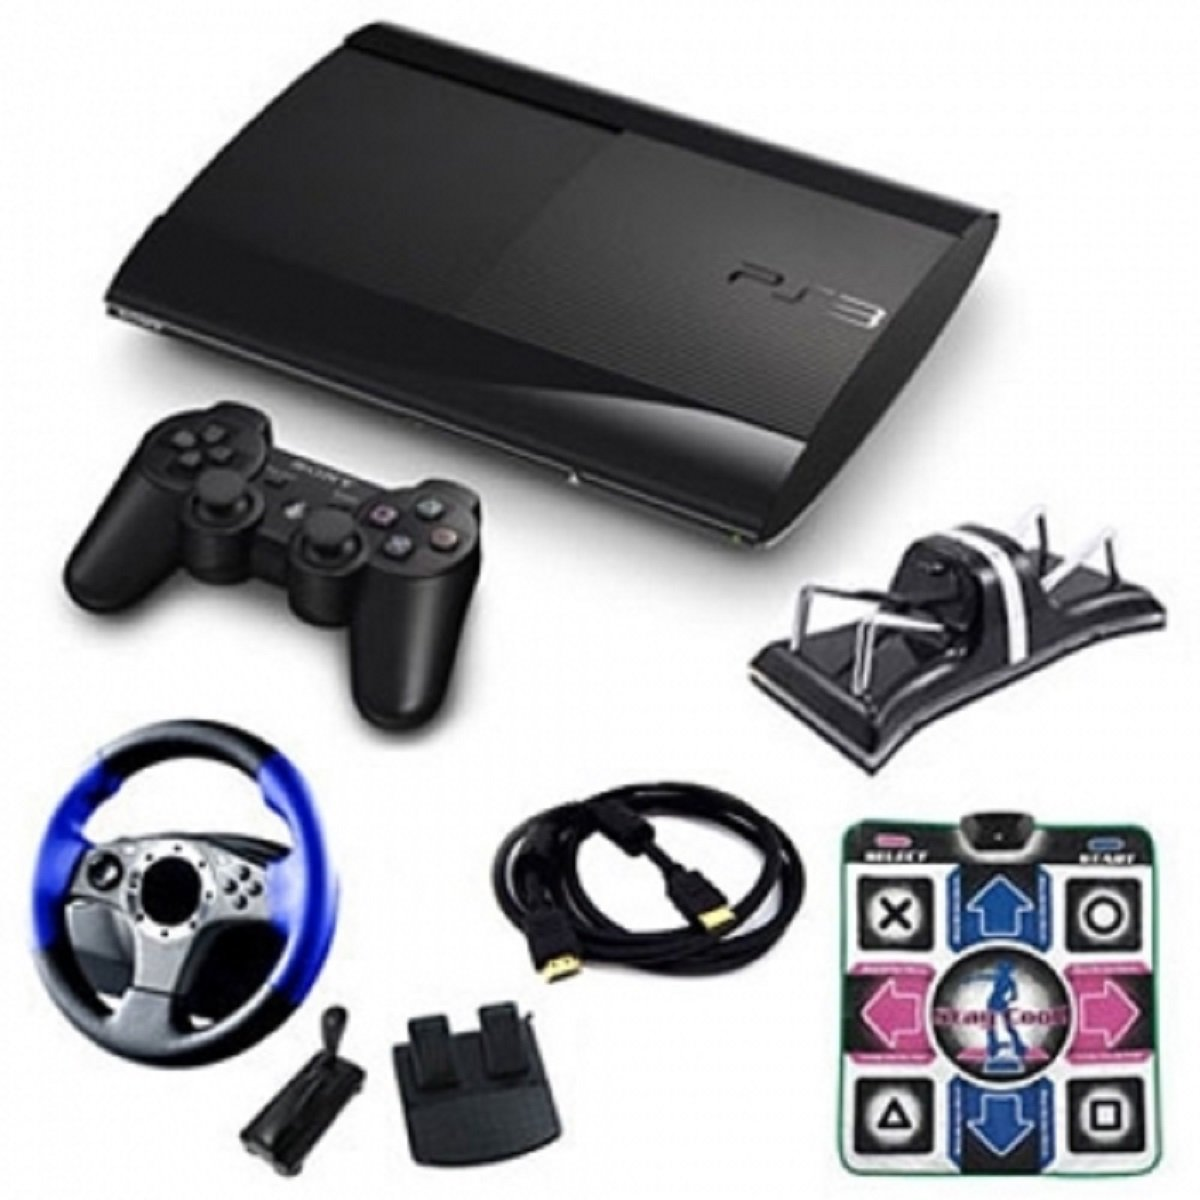 Sony Playstation 3 Slim 250Gb Holiday Starter Bundle With Wheel, Dance Pad, And More